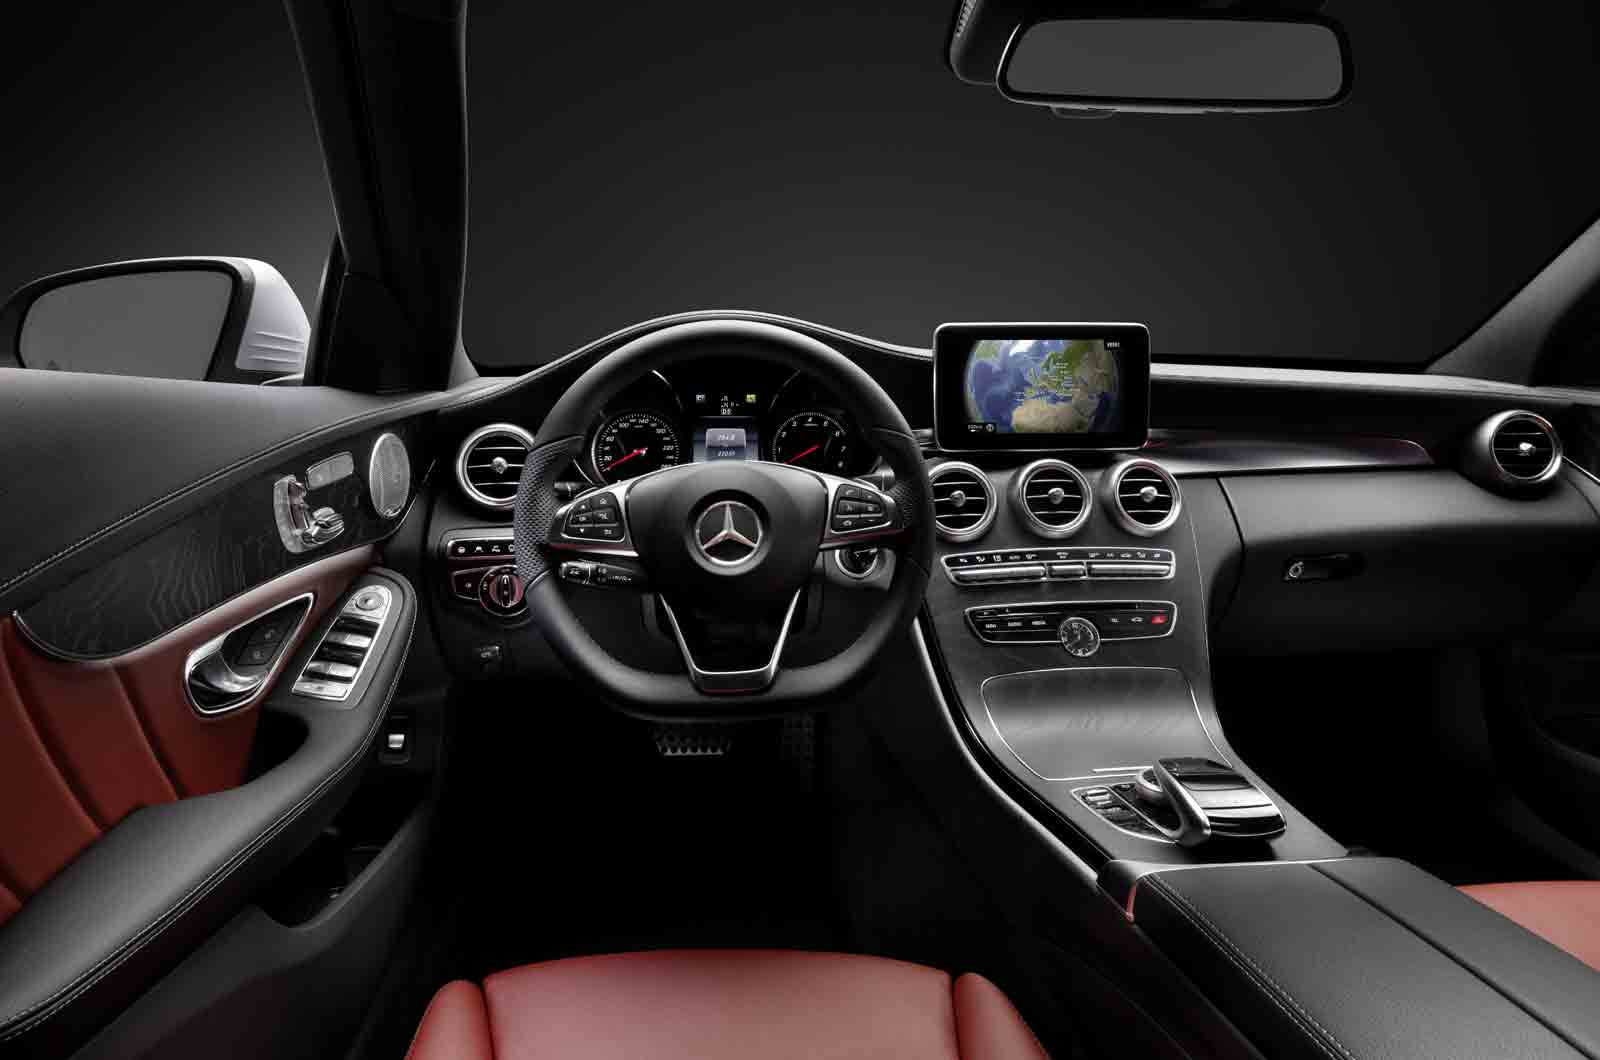 http://autonews.autoua.net/media/uploads/mercedes/c-class-interior=001.jpg